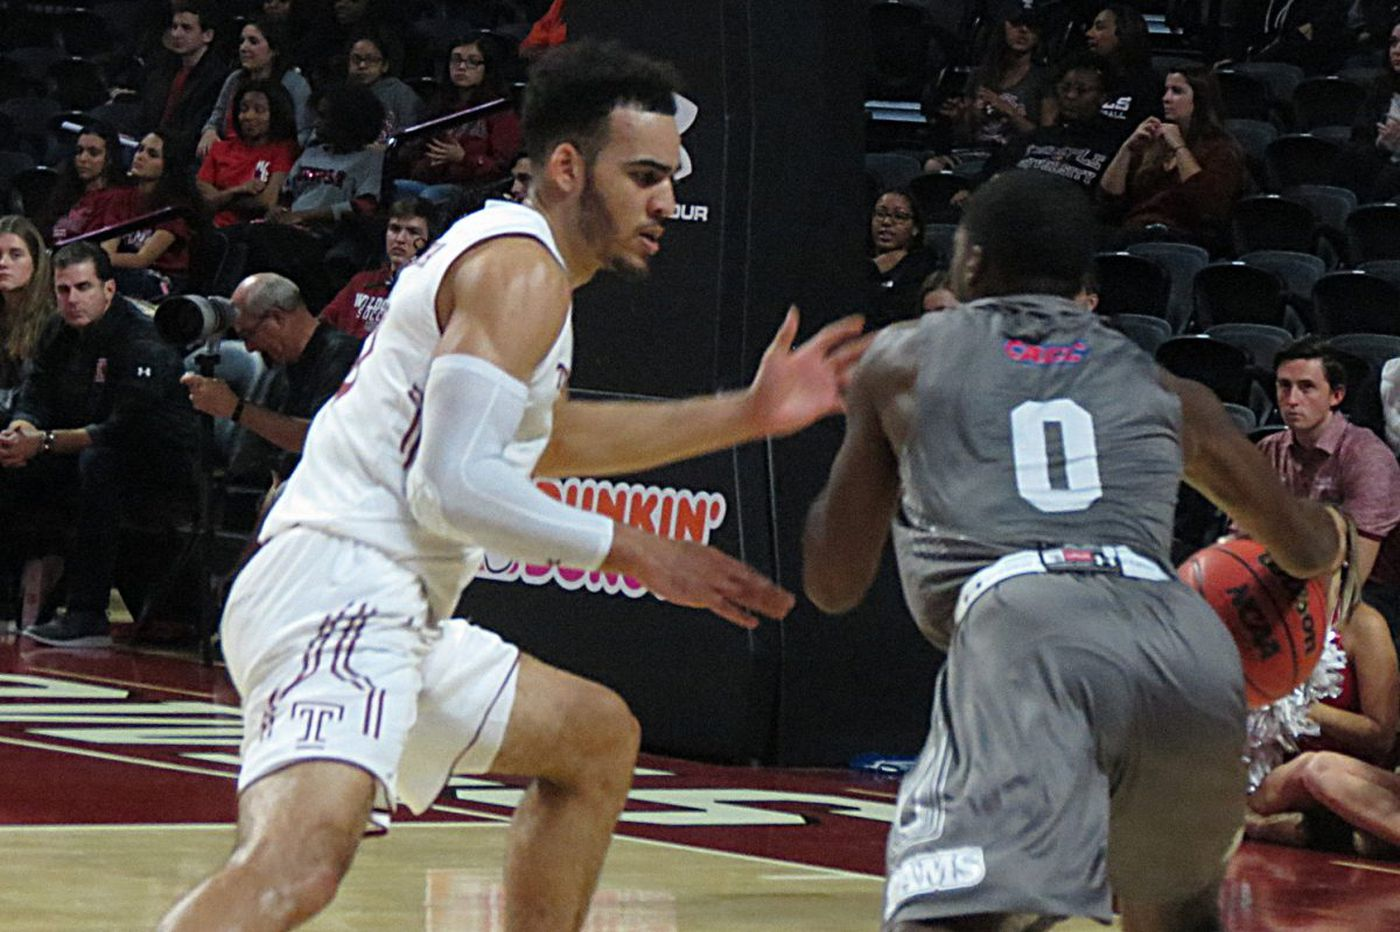 Temple defeats Jefferson in charity exhibition, 70-60